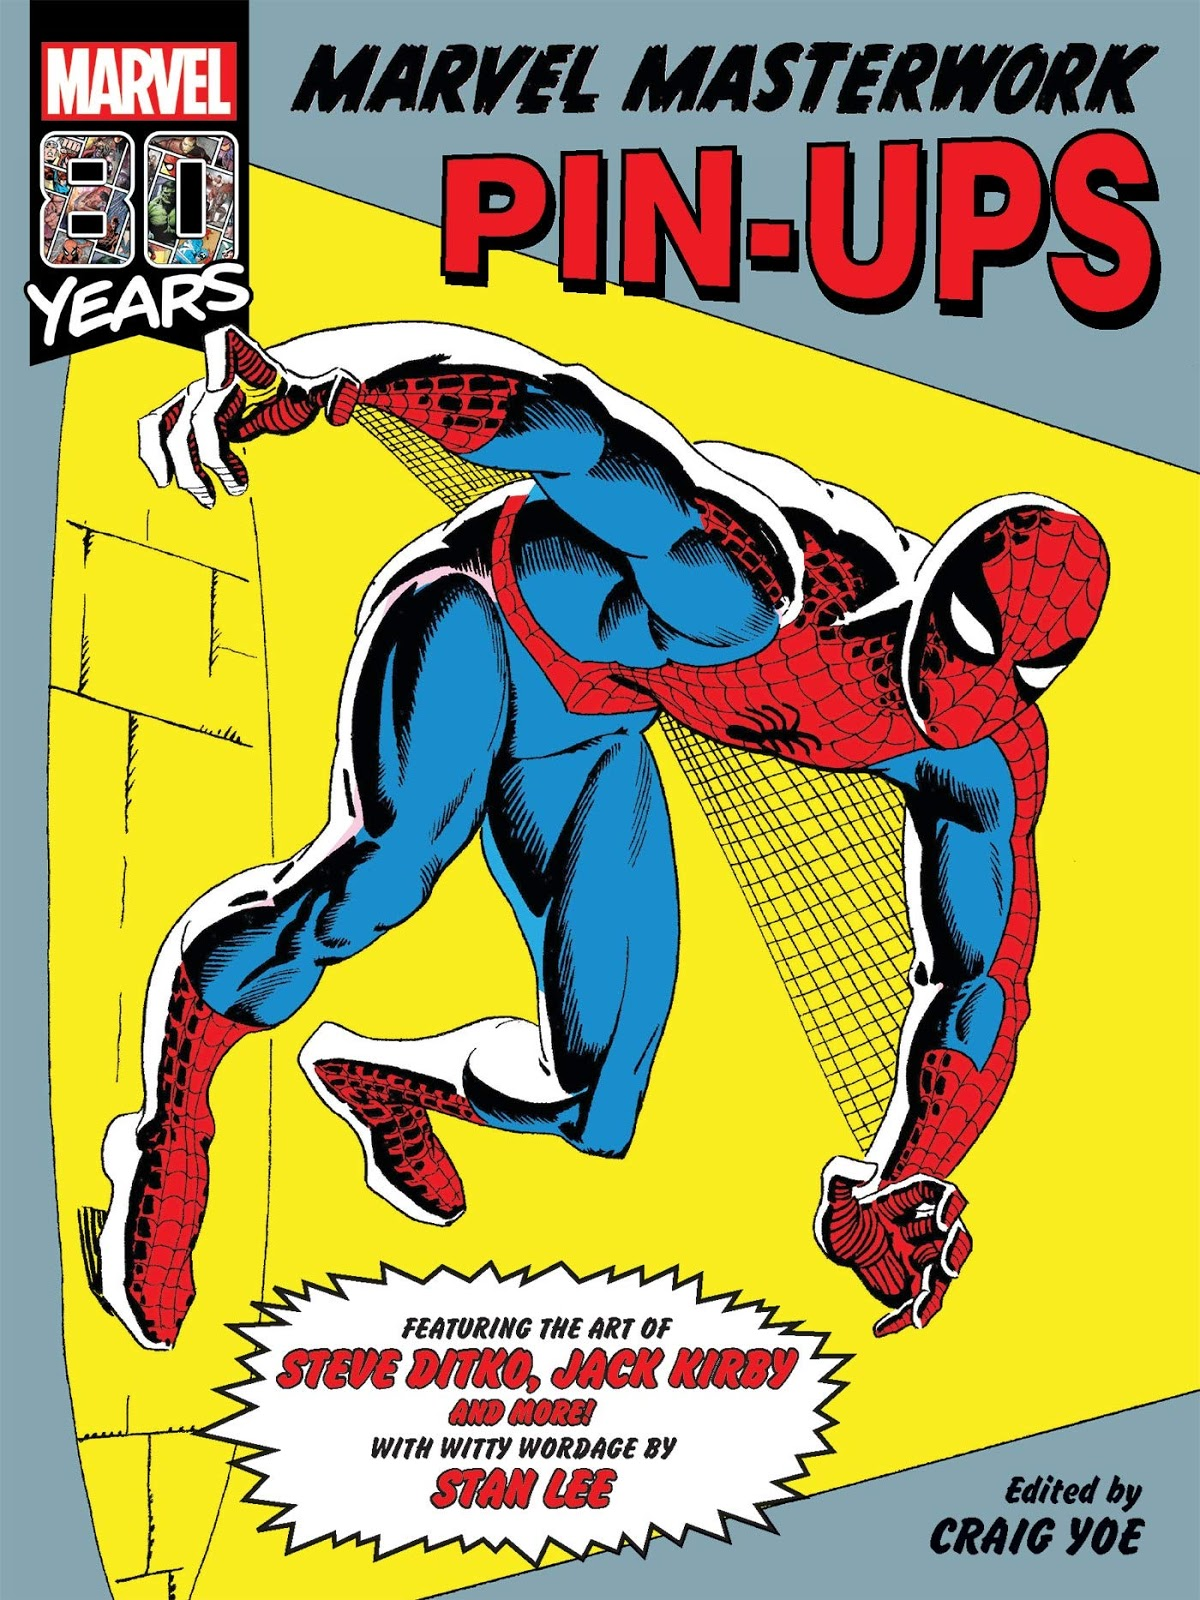 MARVEL MASTERWORK PIN-UPS!